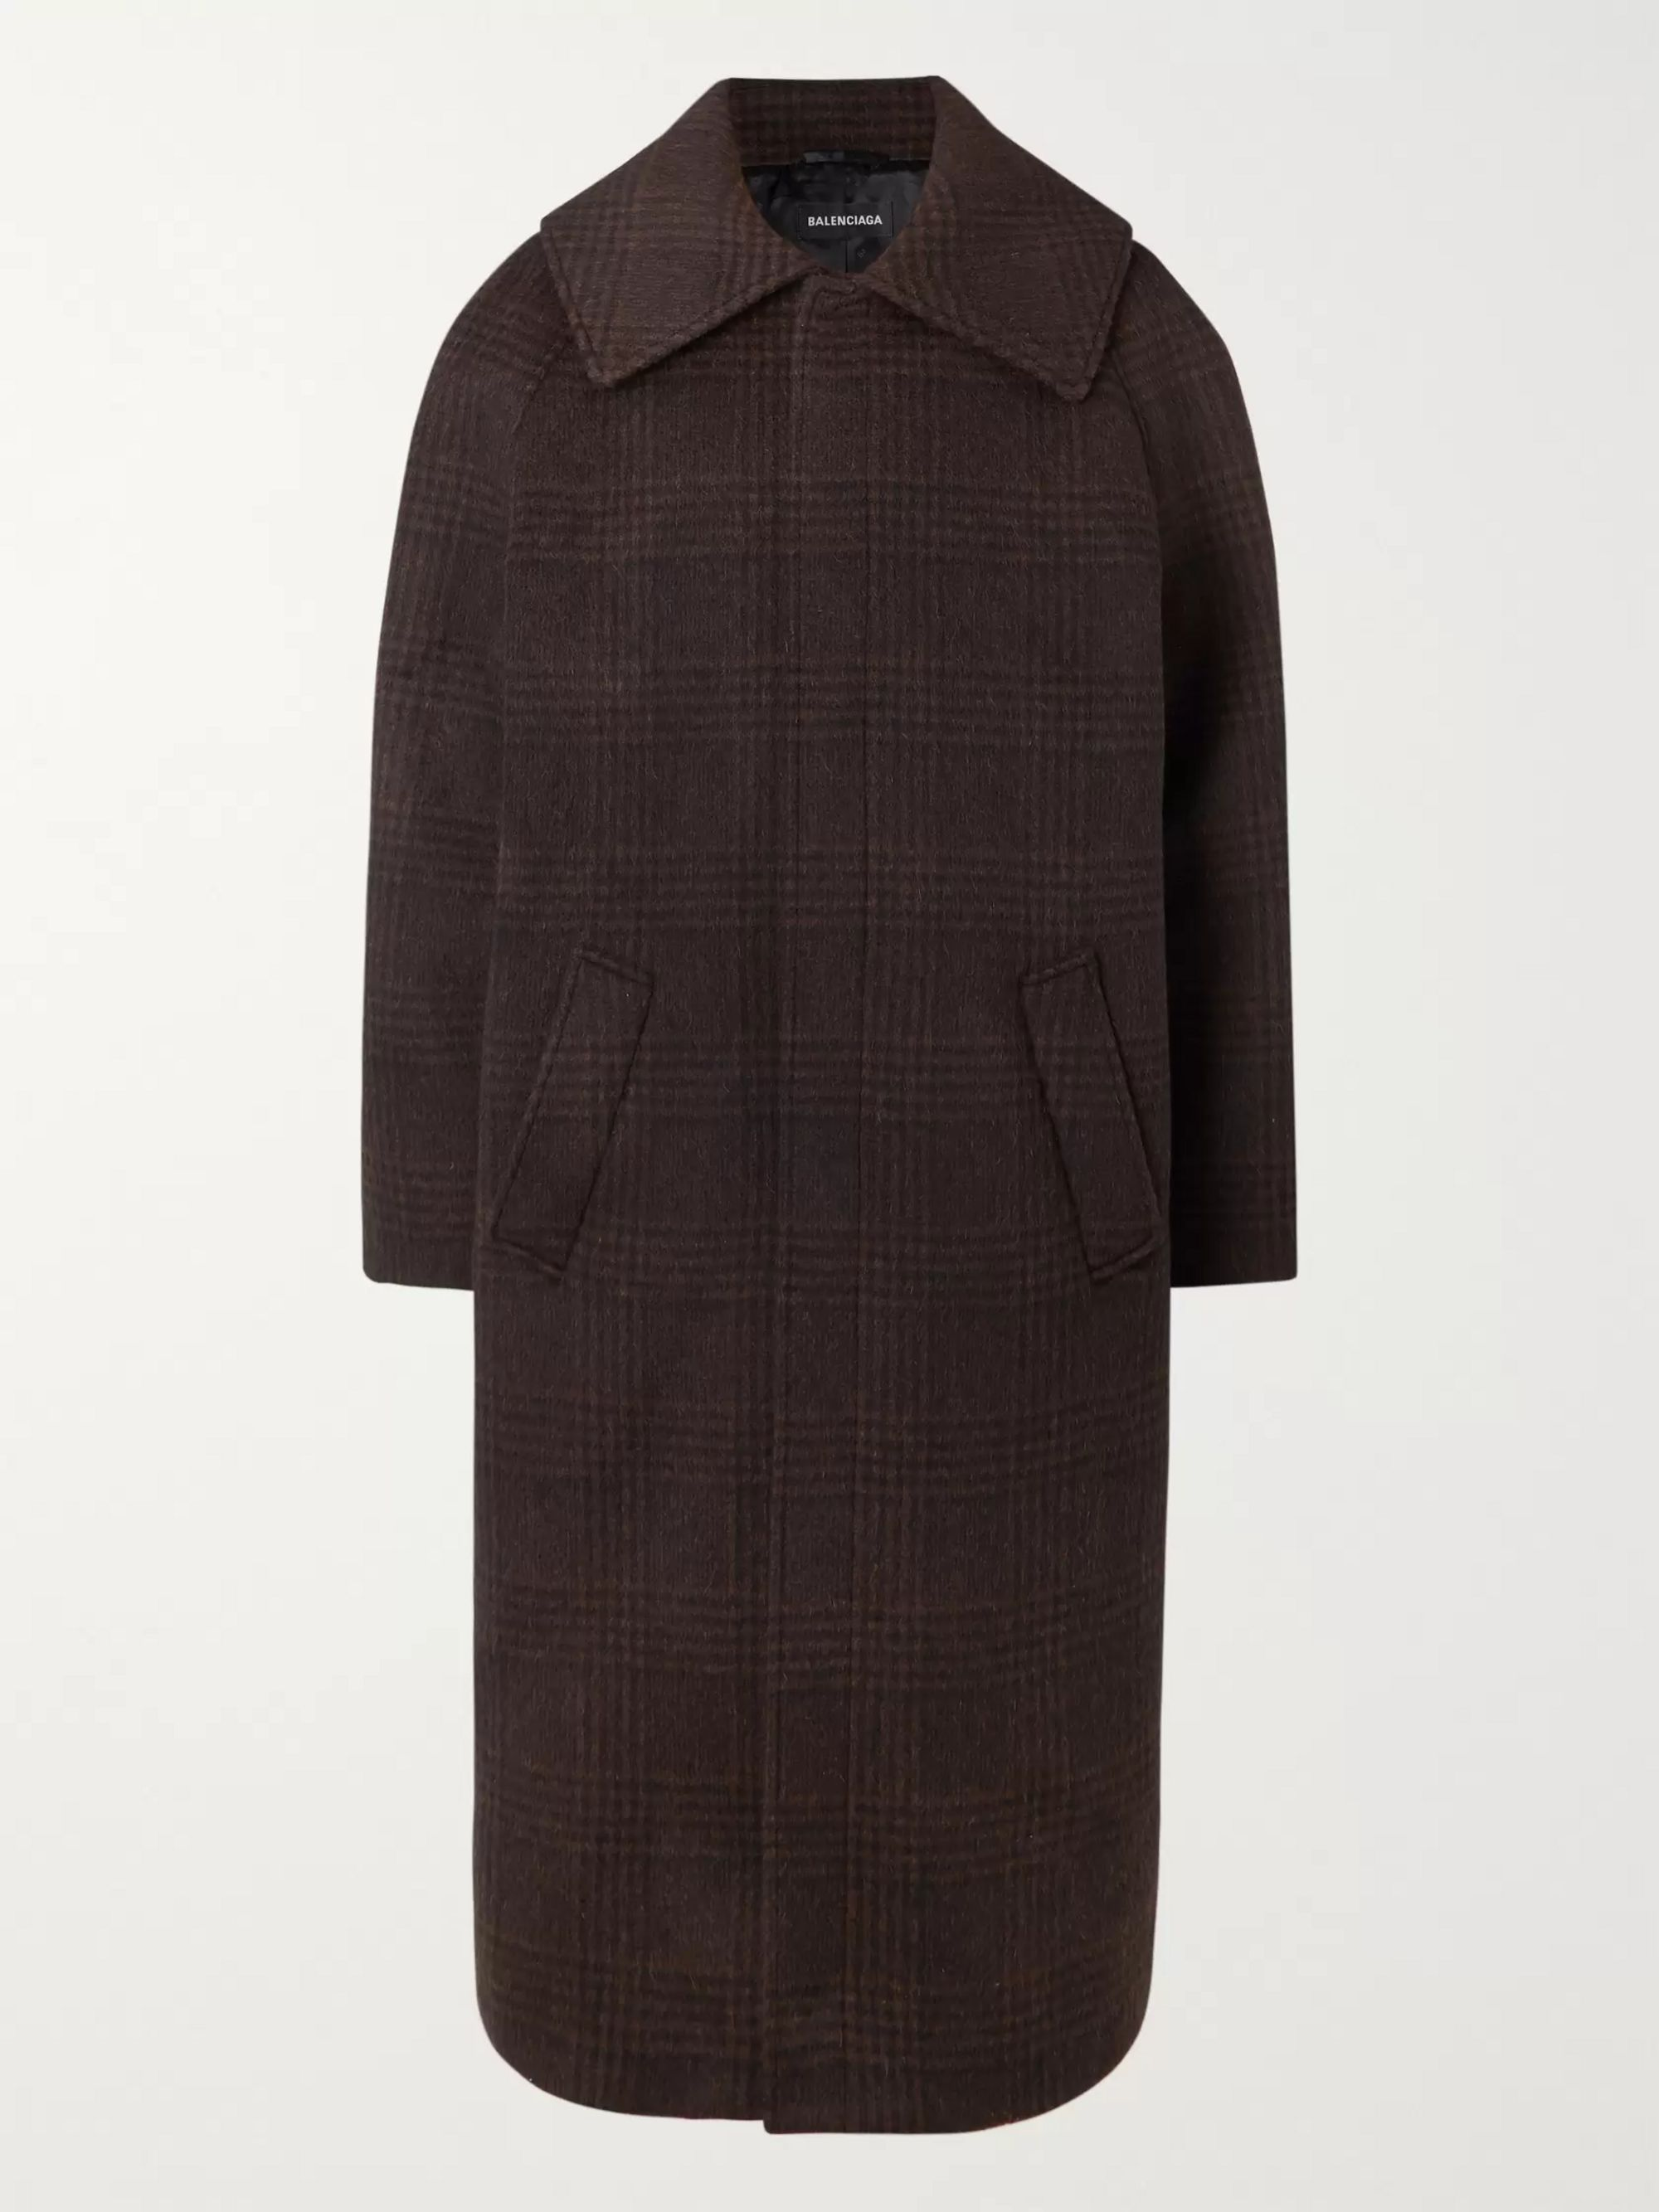 Balenciaga Oversized Checked Wool-Blend Coat